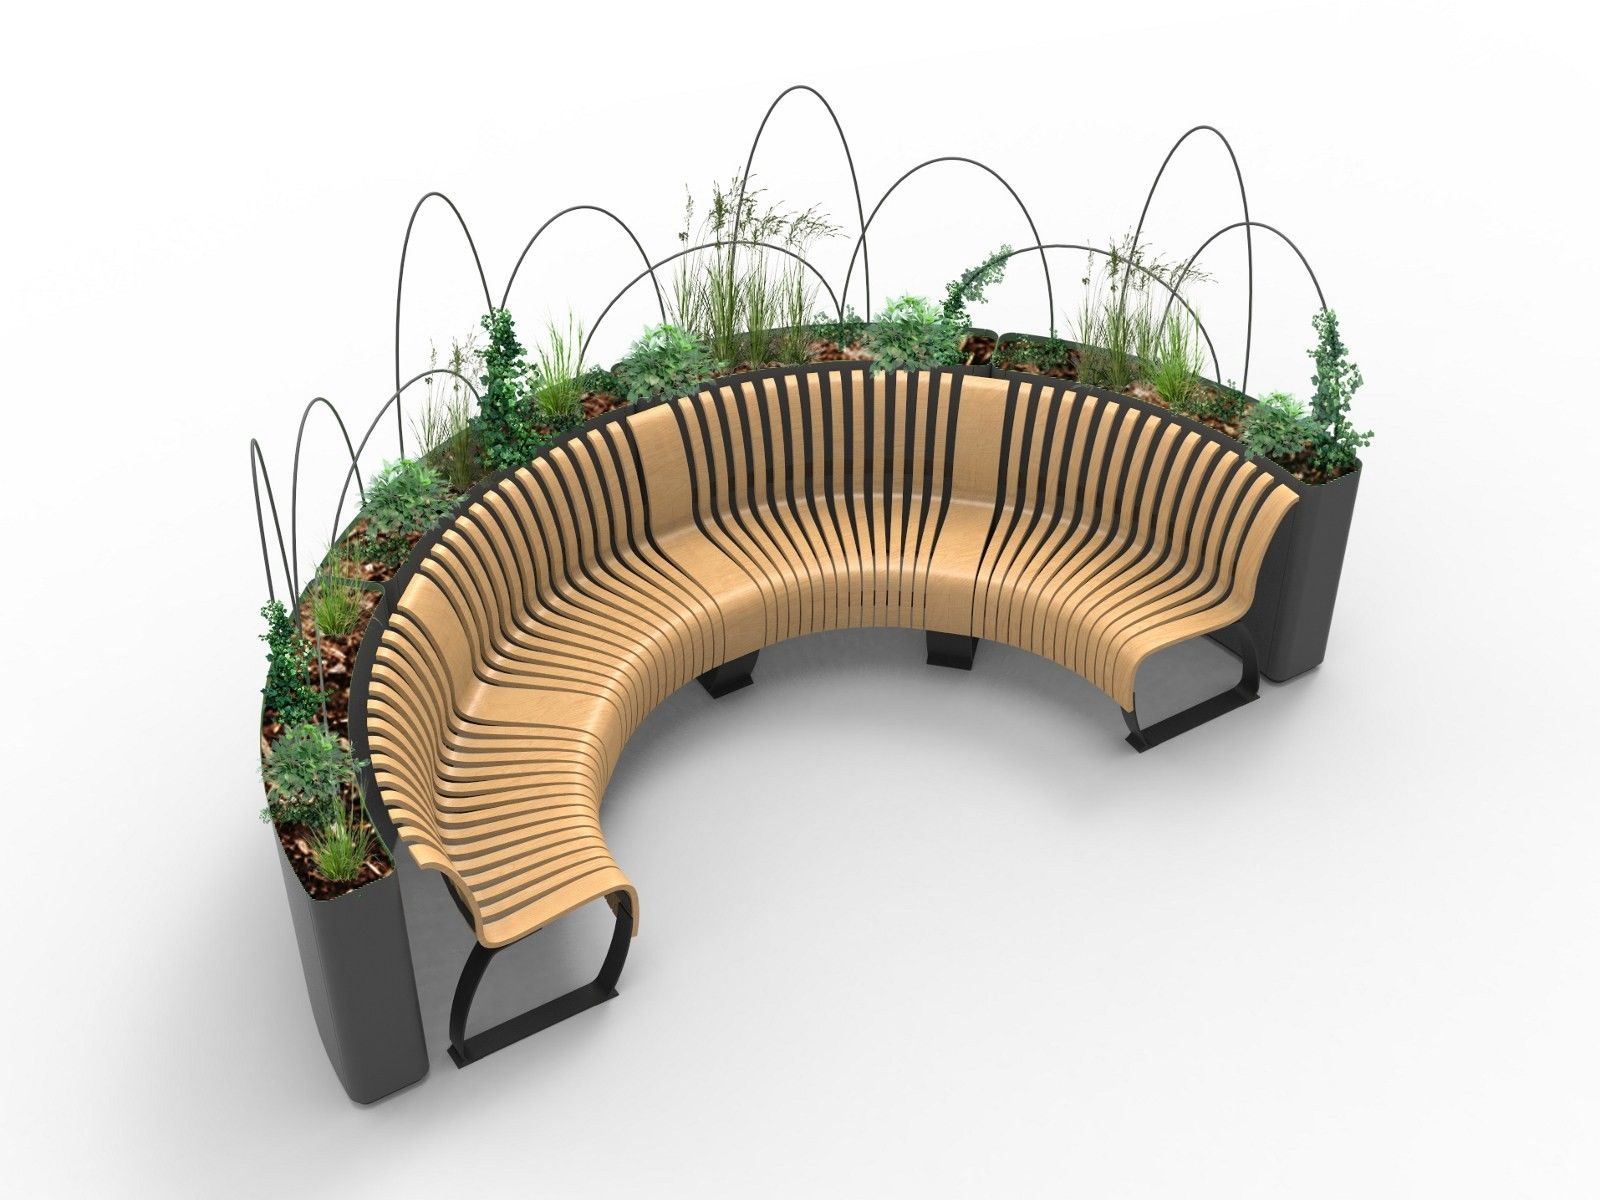 Metal Planter Divider Radius Planter Divider By Green Furniture Concept Urban Furniture Design Green Furniture Furniture Design Modern